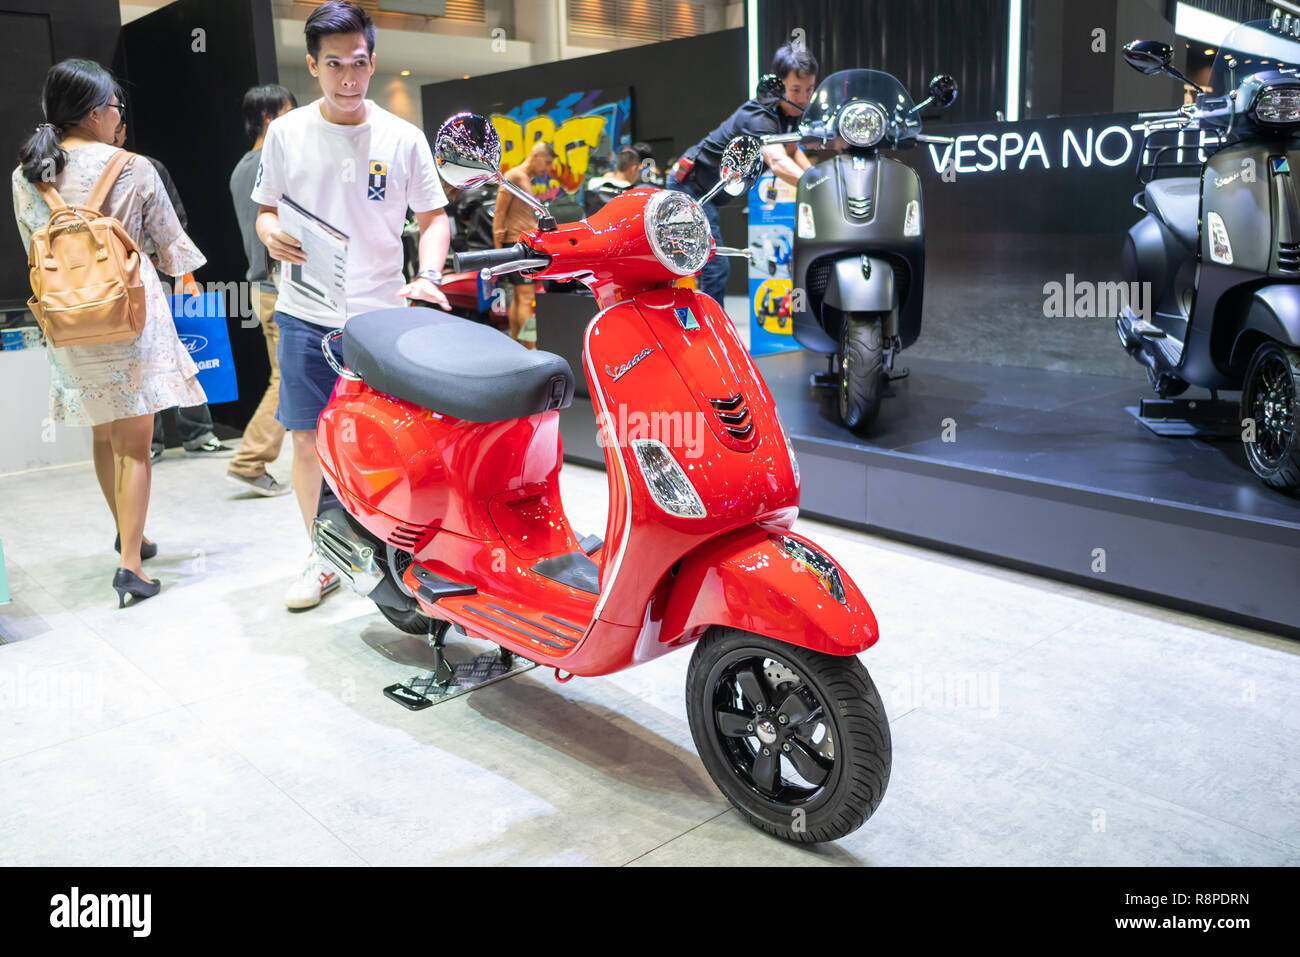 Bangkok, Thailand - November 30, 2018 : Vespa motorcycle and